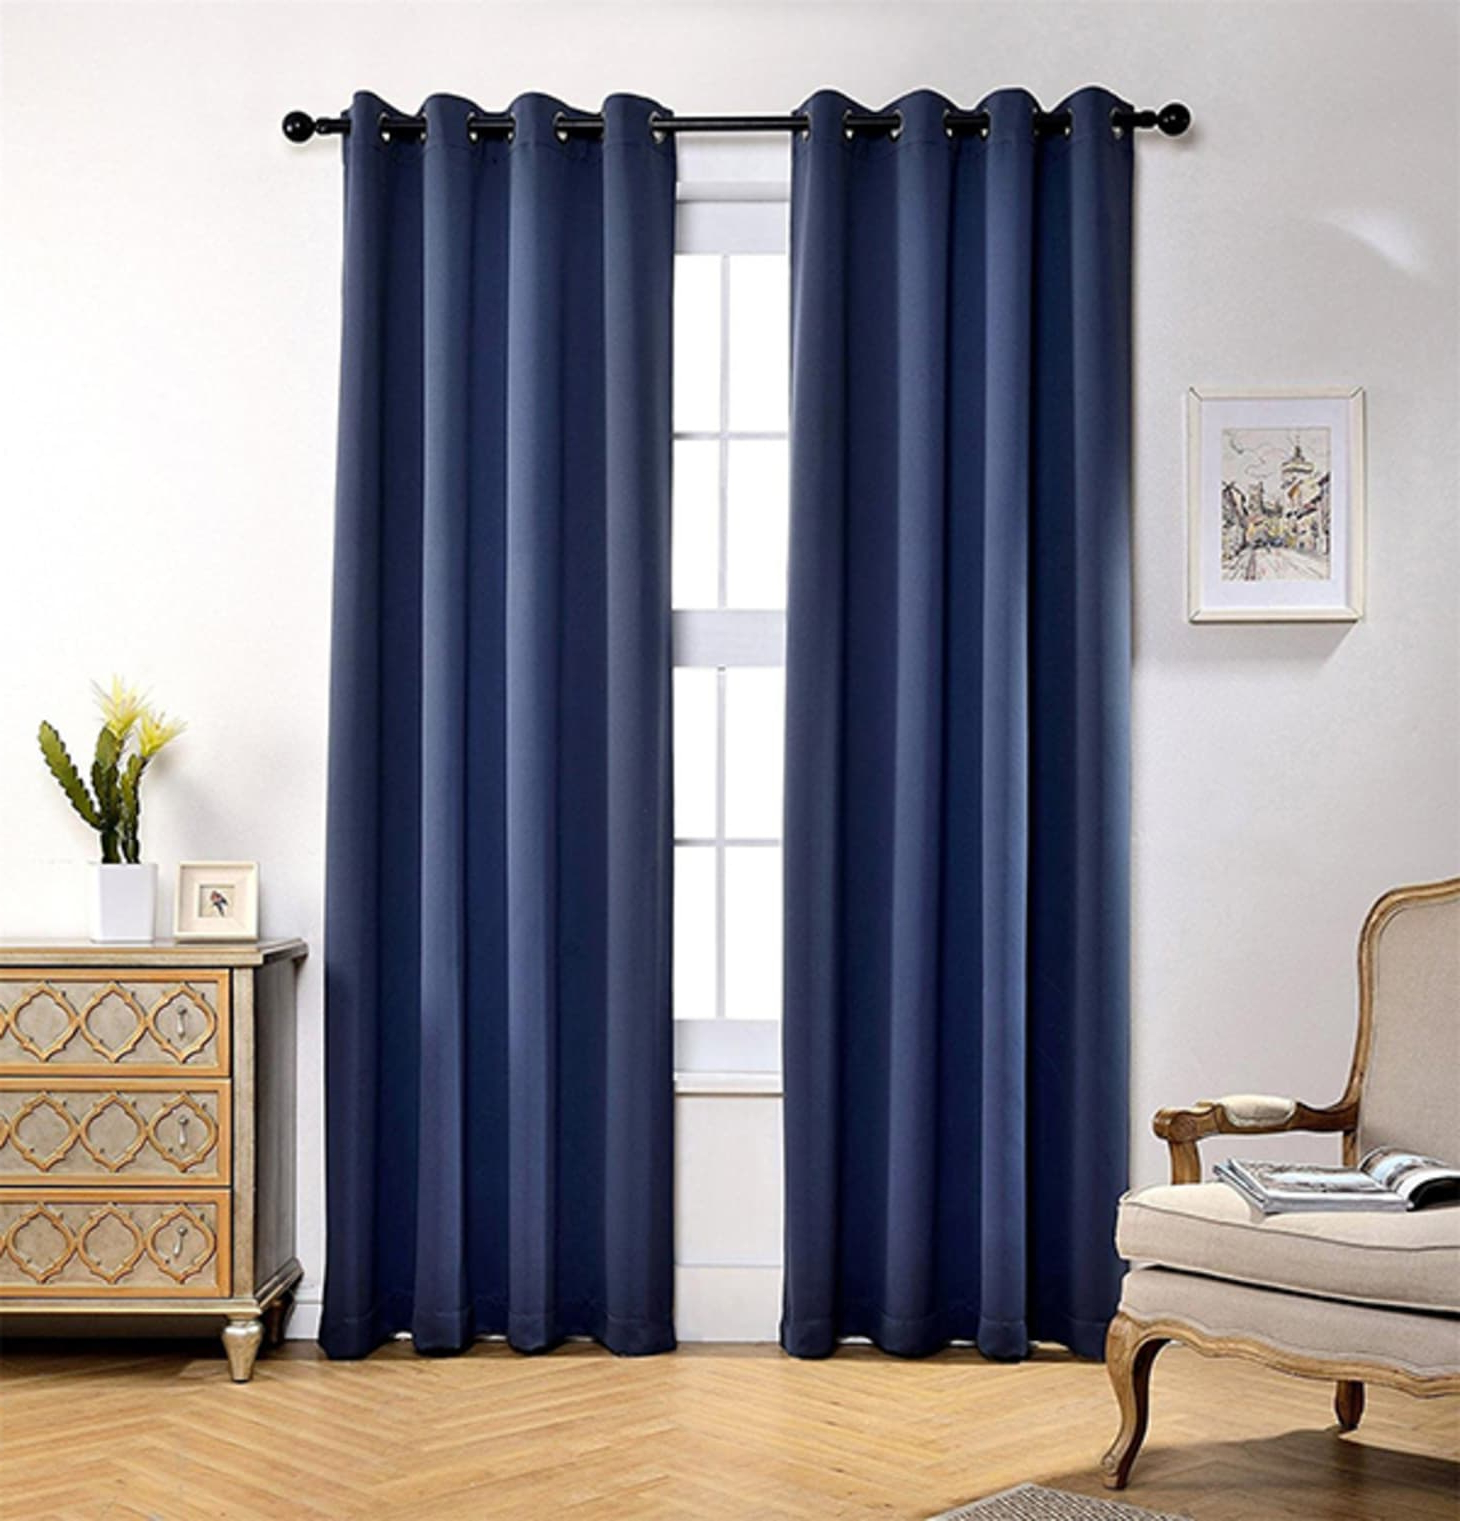 Apartment Therapy With Best And Newest Moroccan Style Thermal Insulated Blackout Curtain Panel Pairs (View 18 of 20)